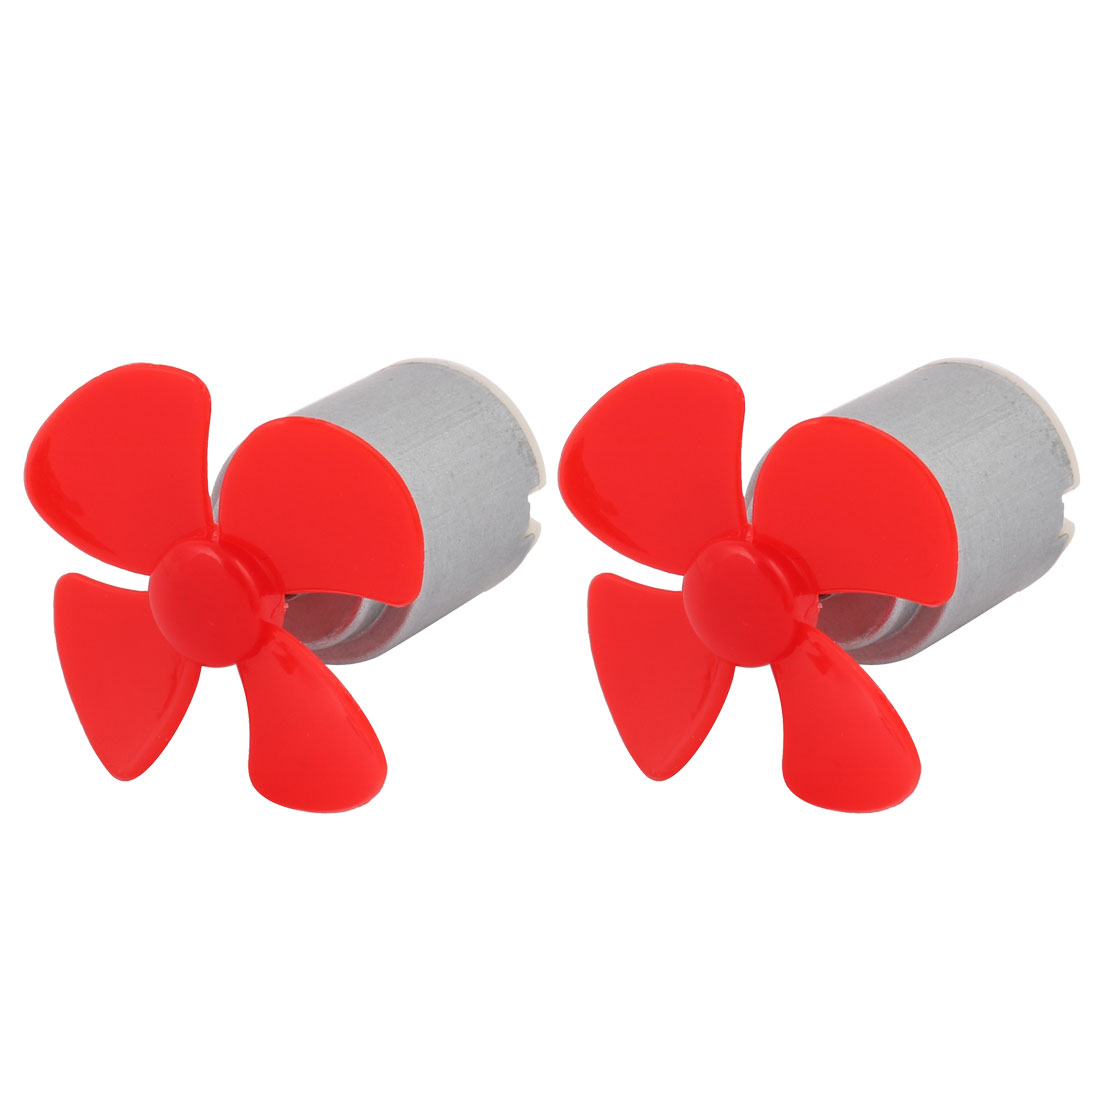 2pcs DC 3V 0.15A 19500RPM Strong Force Motor 4 Vanes 40mm Red Propeller for RC Aircraft